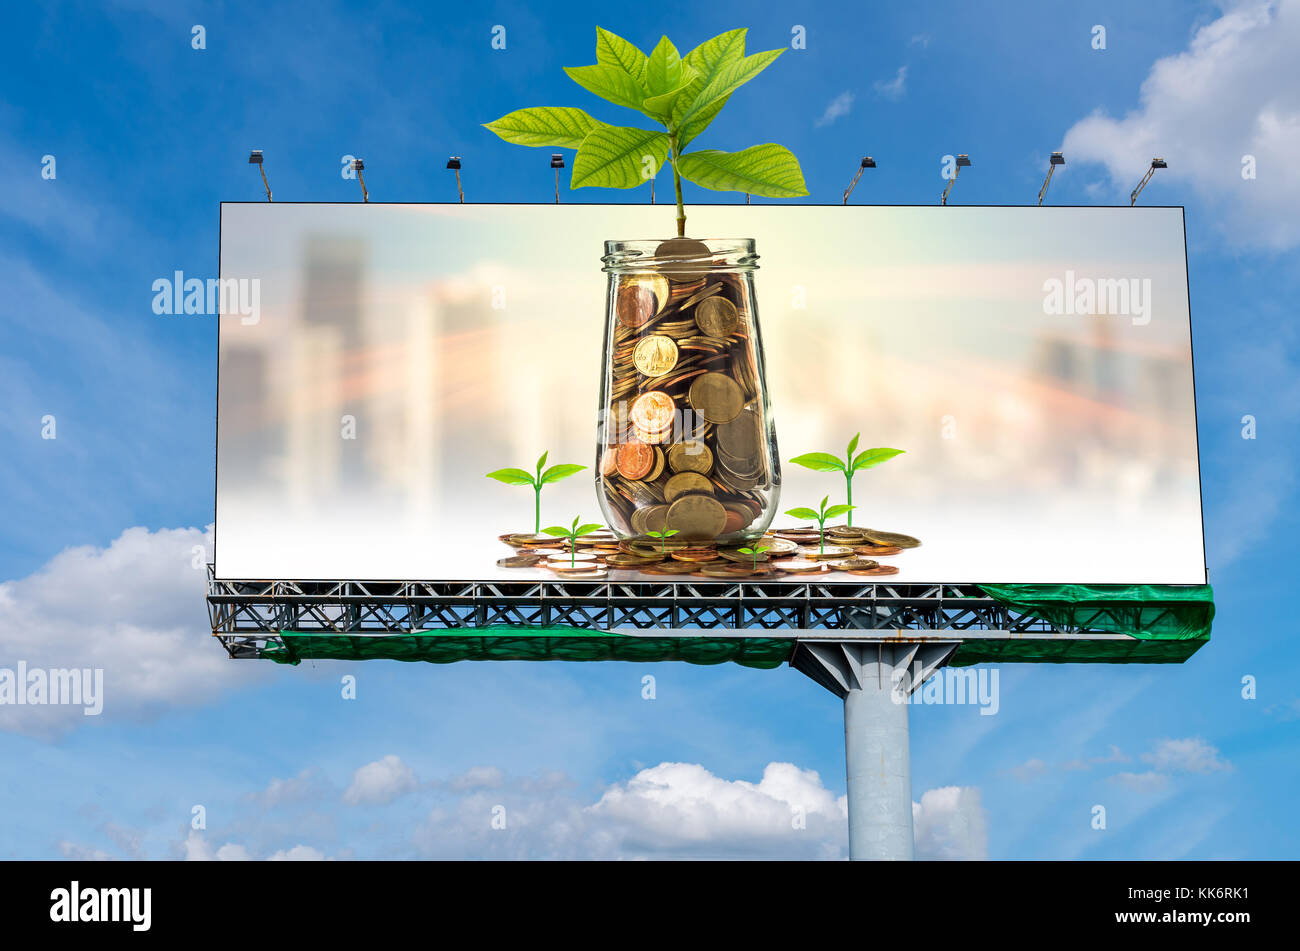 Billboard on beautiful sky showing the Gold coin and seed in clear bottle on cityscape photo blurred cityscape background,Business - Stock Image